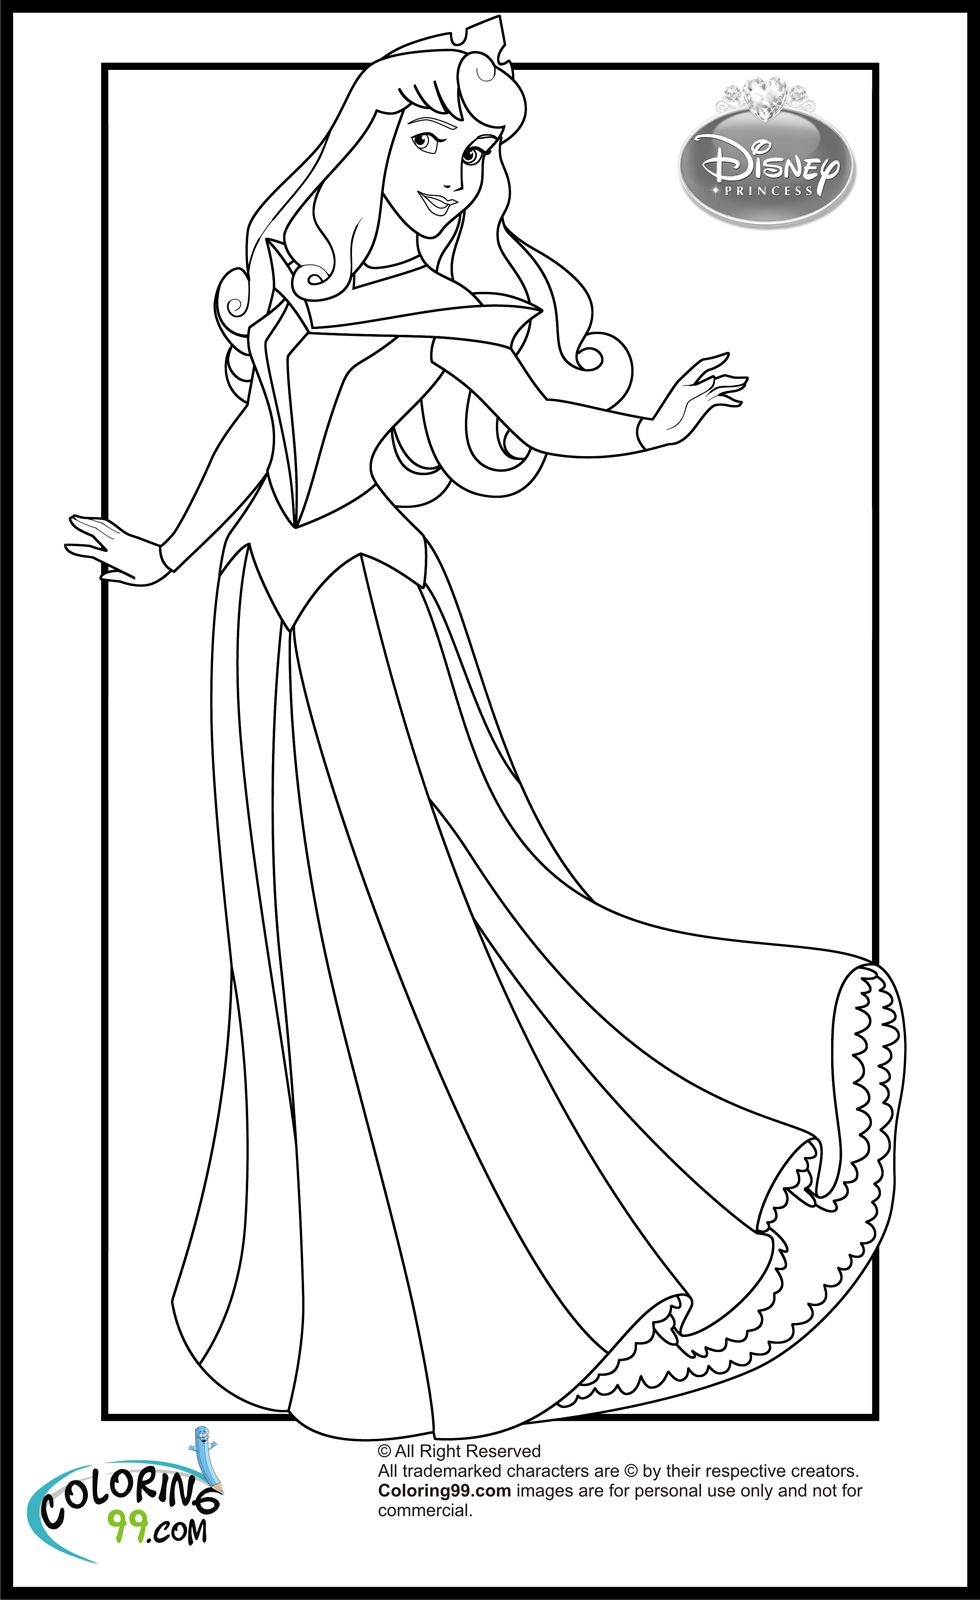 Princess aurora coloring pages games - Disney Princess Aurora Coloring Pages